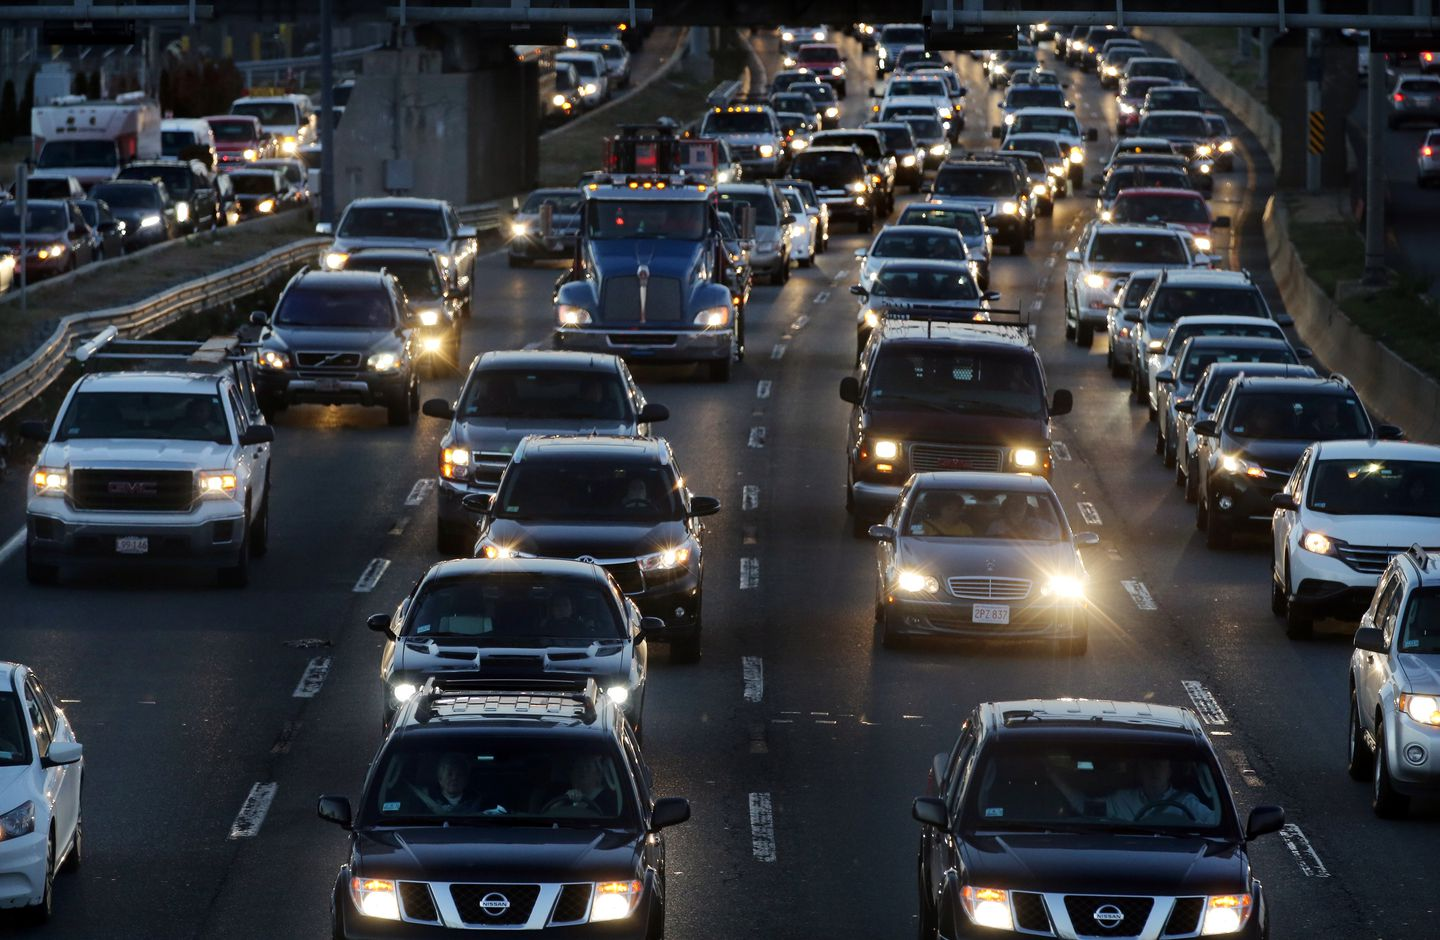 Vehicles today take a lot longer to cover the same distances they did a decade ago.